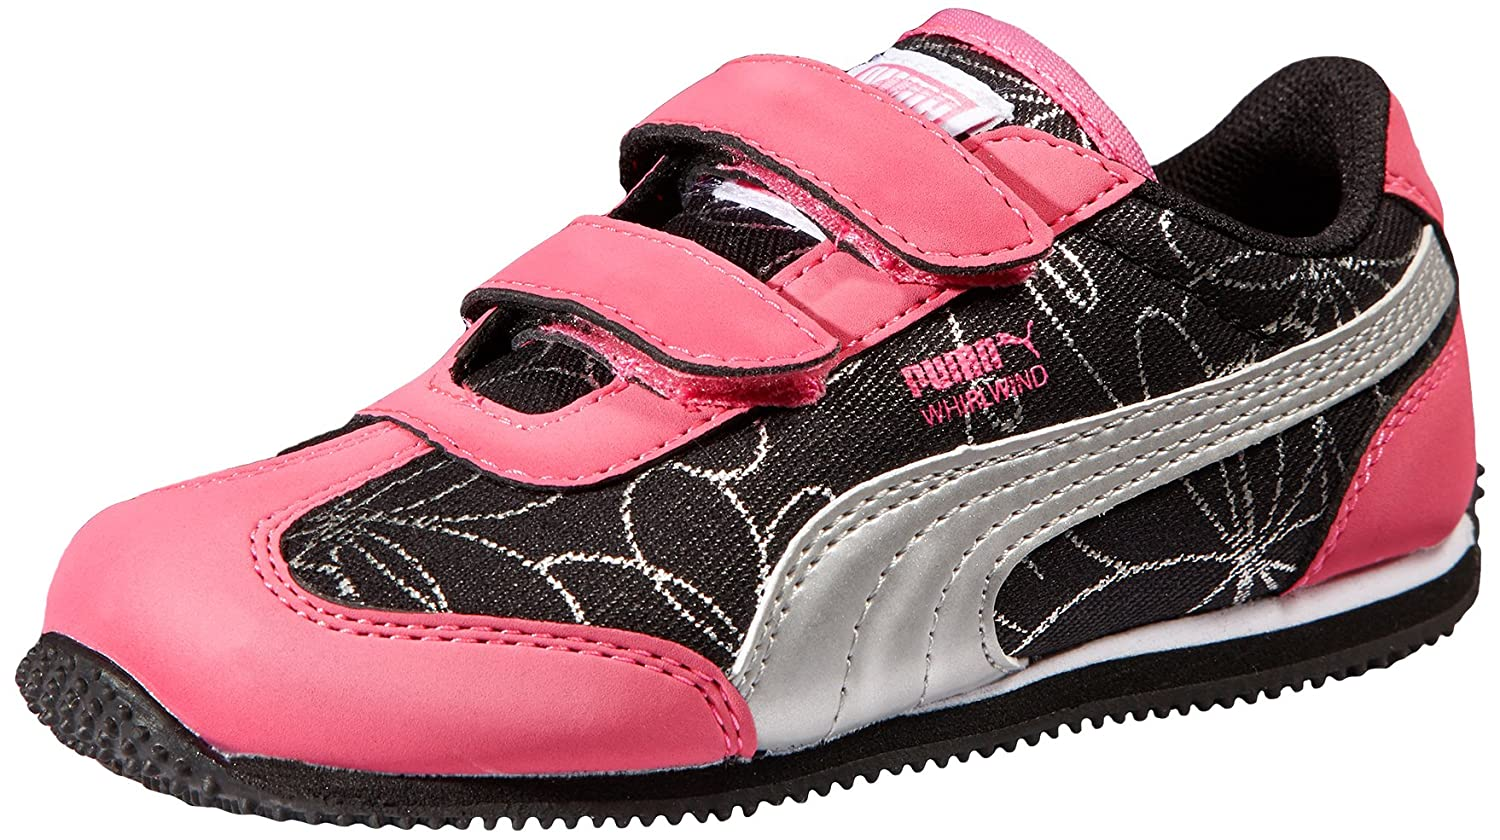 6b1b319e730 Amazon.com   PUMA Whirlwind V Sneaker (Toddler Little Kid), Fluorescent  Pink Puma Silver, 4 M US Toddler   Sneakers